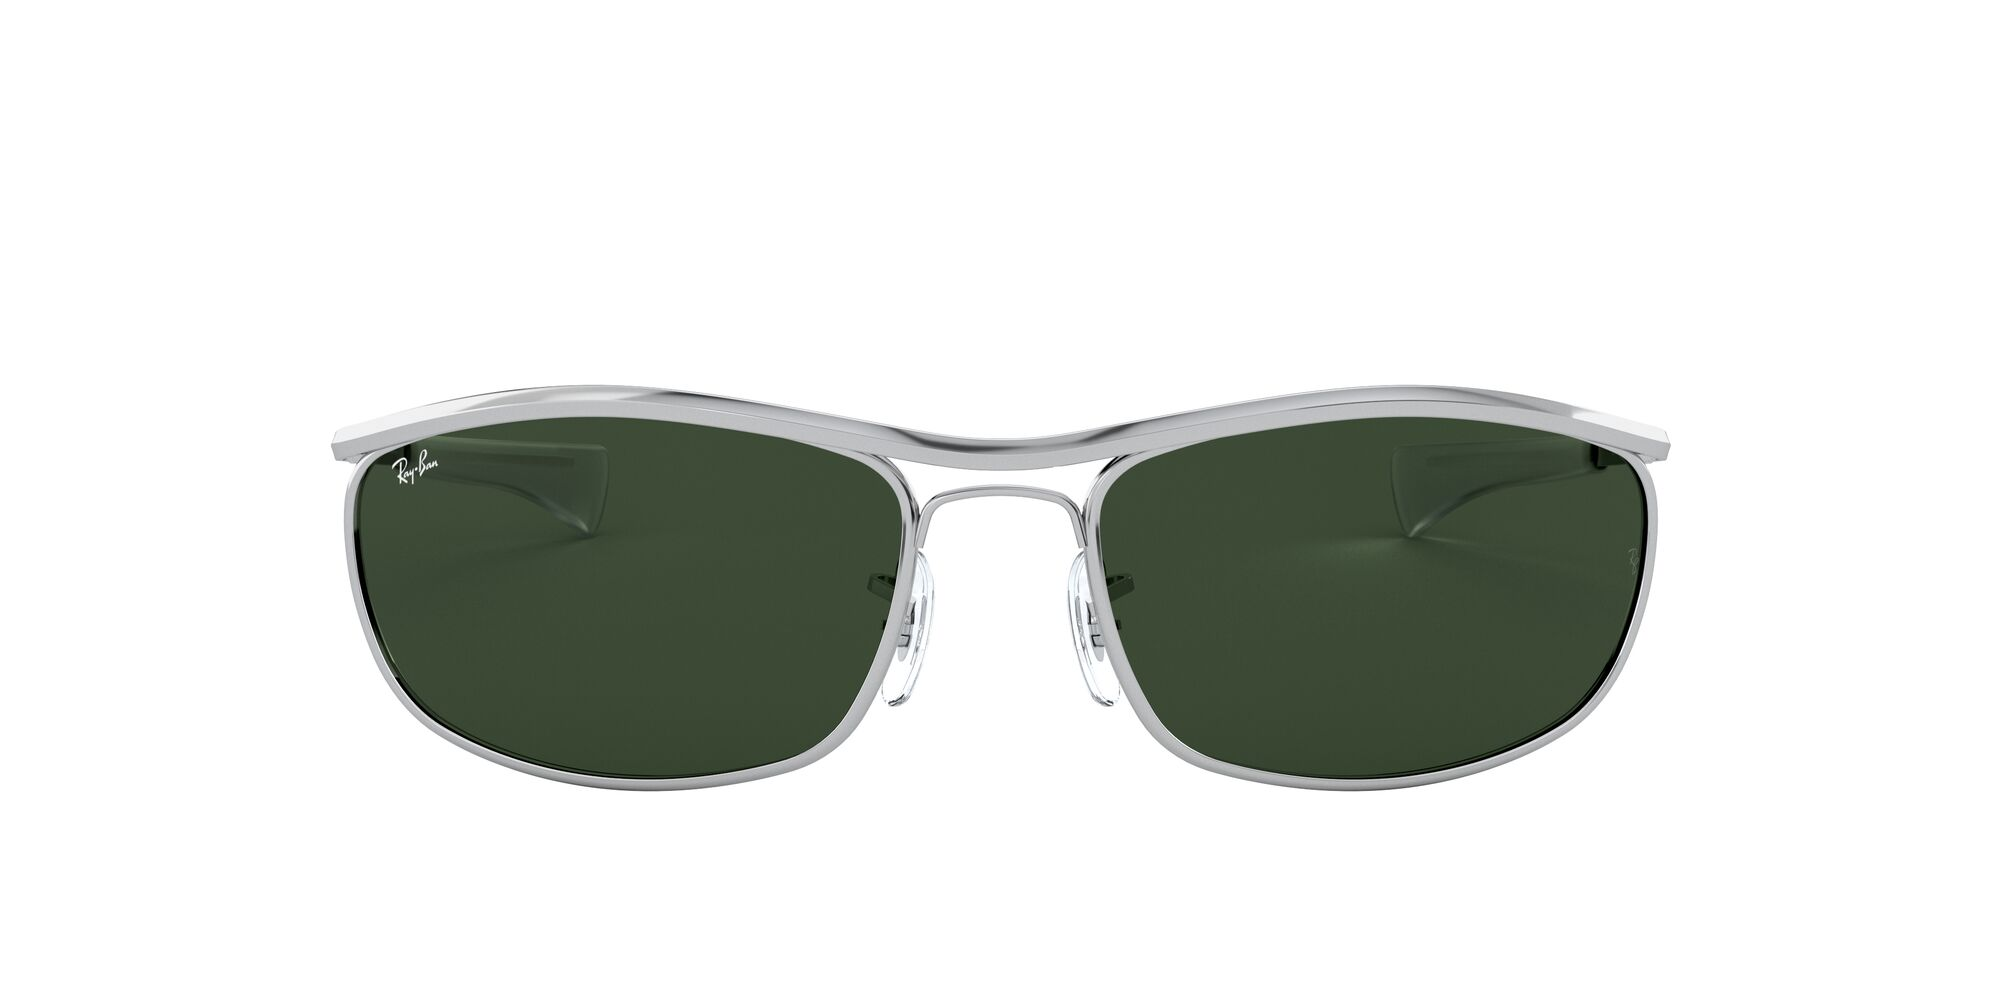 Front Ray-Ban Ray-Ban 0RB3119M 003/31 62/18 Zilver/Groen